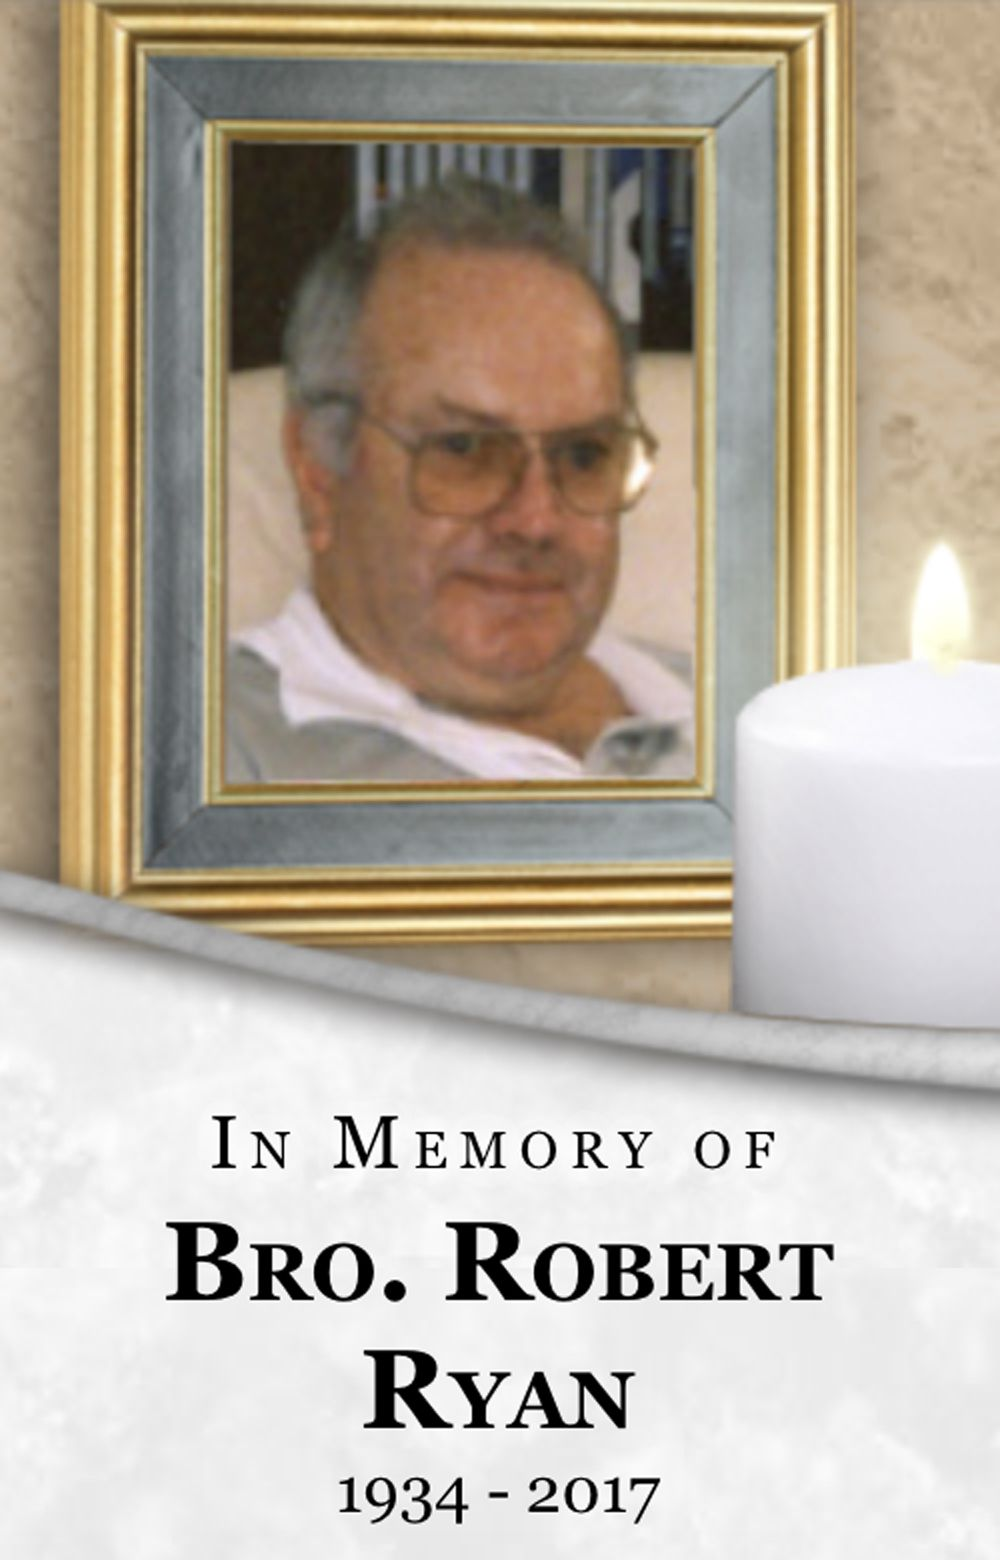 A Marist Brothers memorial for Brother Robert Ryan.